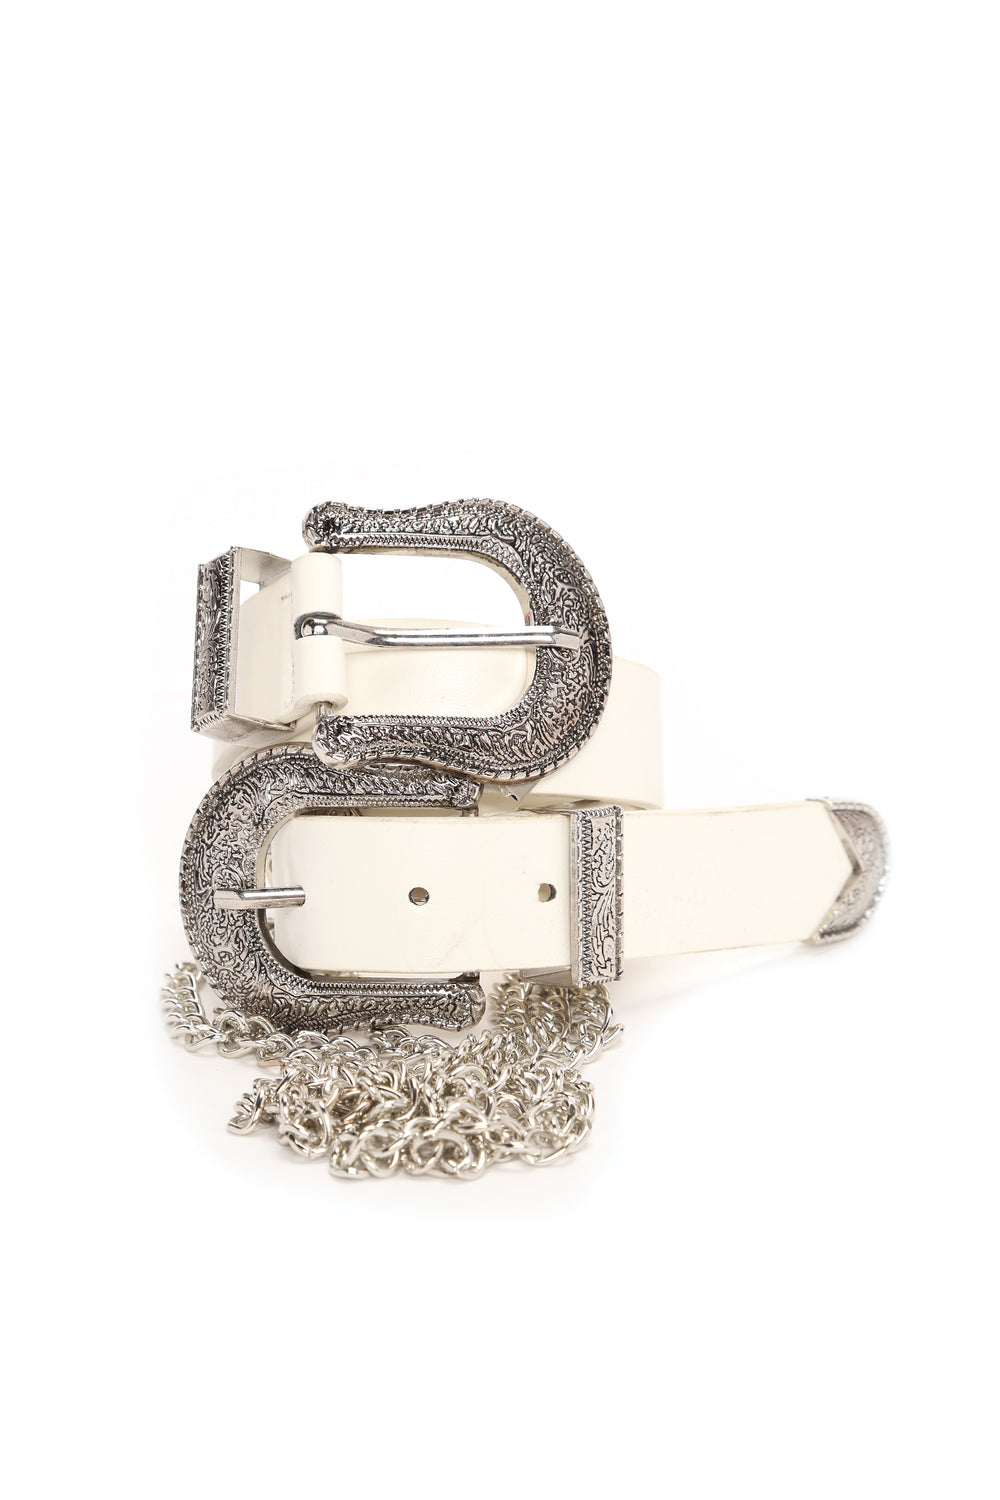 Can We Link Up Belt - White/Silver